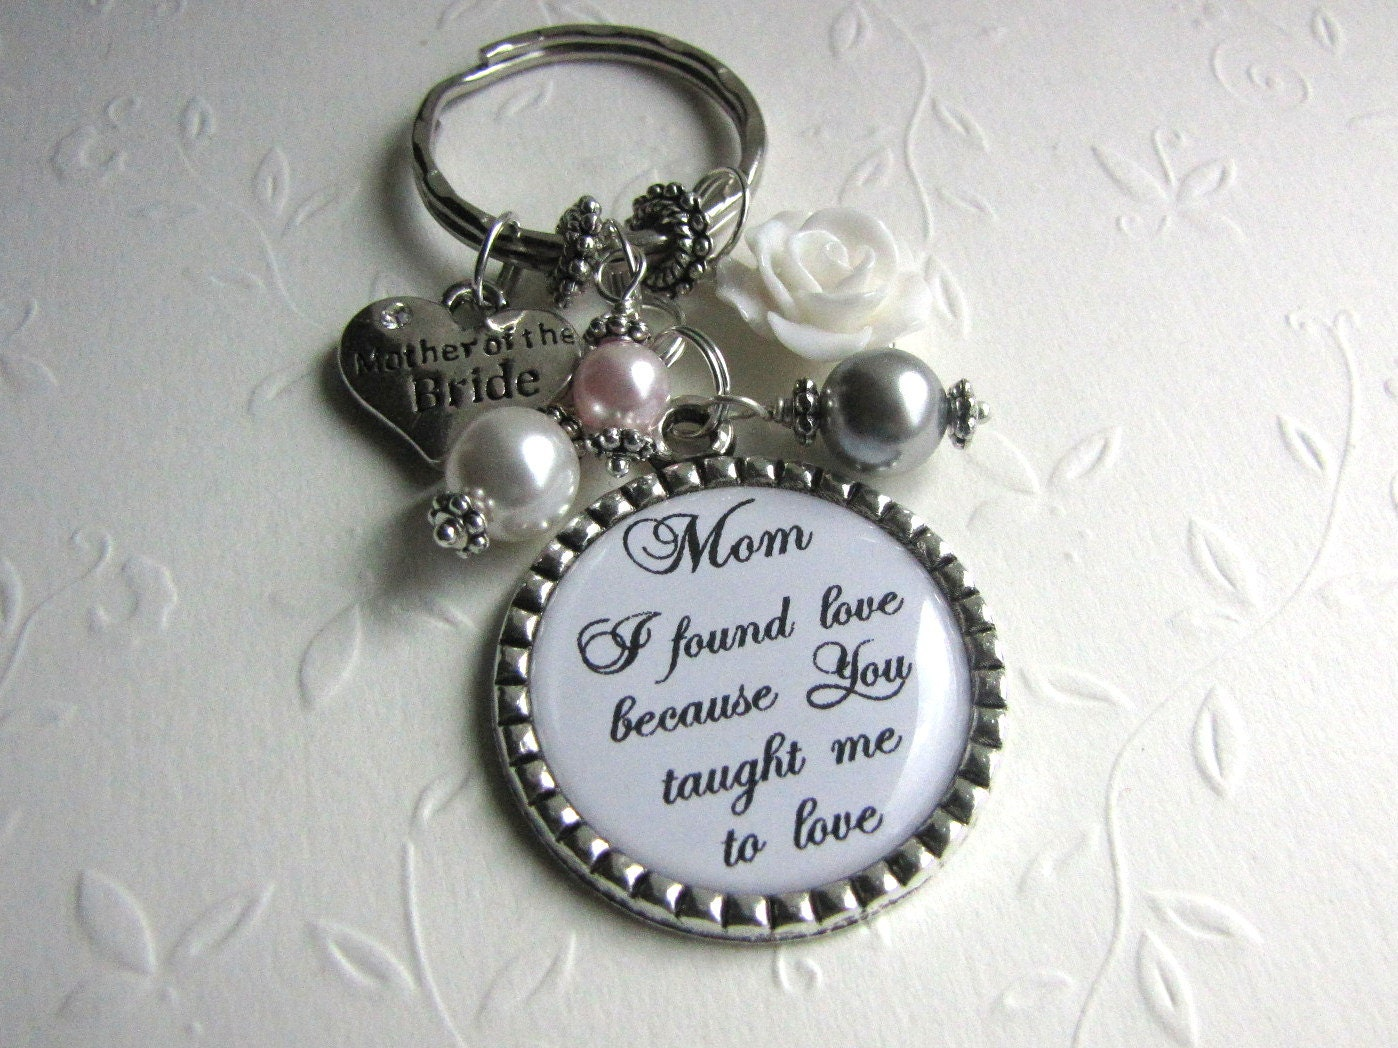 Wedding Gifts For Daughter : Wedding gift for Mom Mother-of-the-Bride gift from Daughter